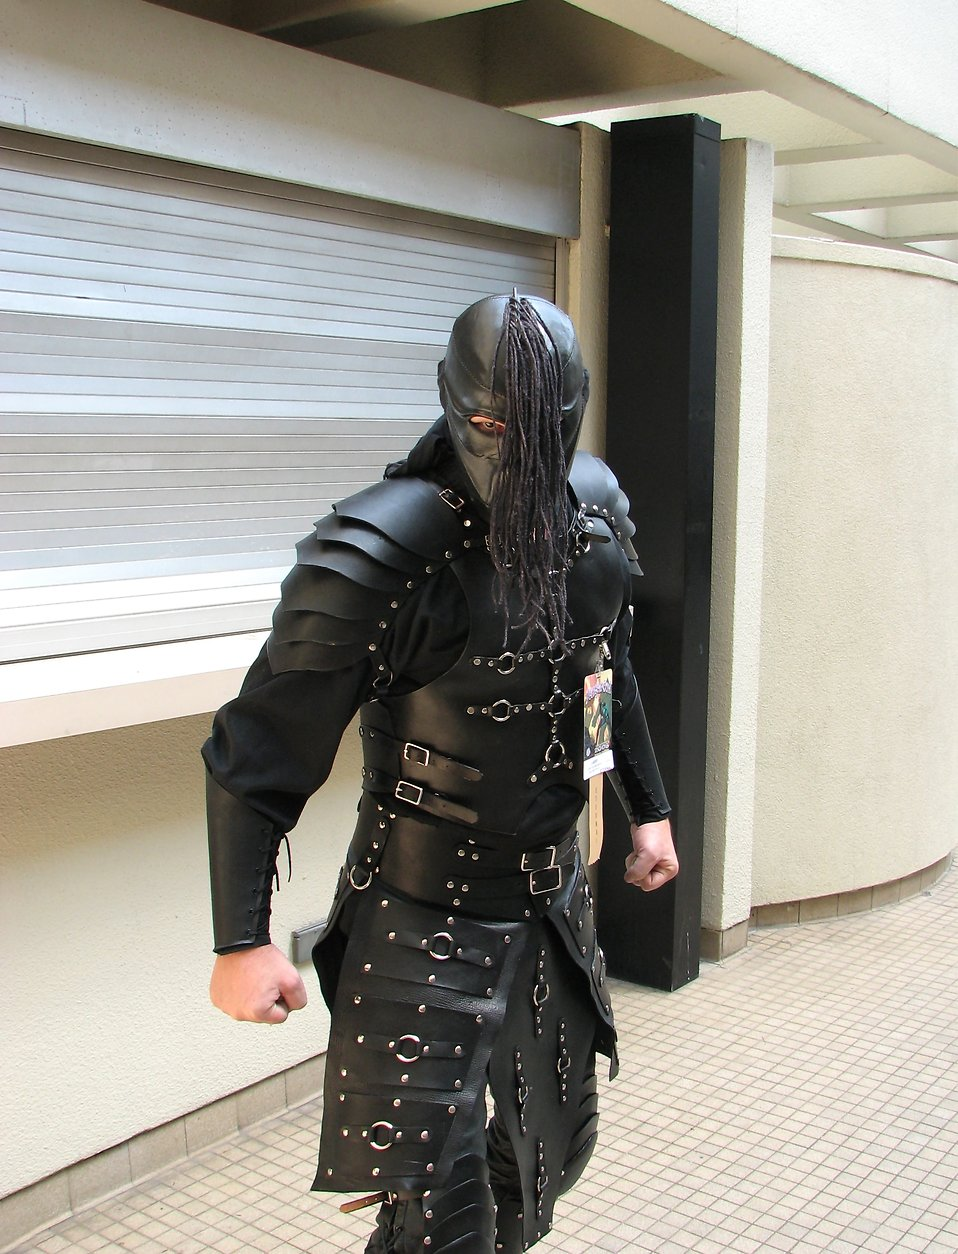 A man in a leather costume at Dragoncon 2008 : Free Stock Photo